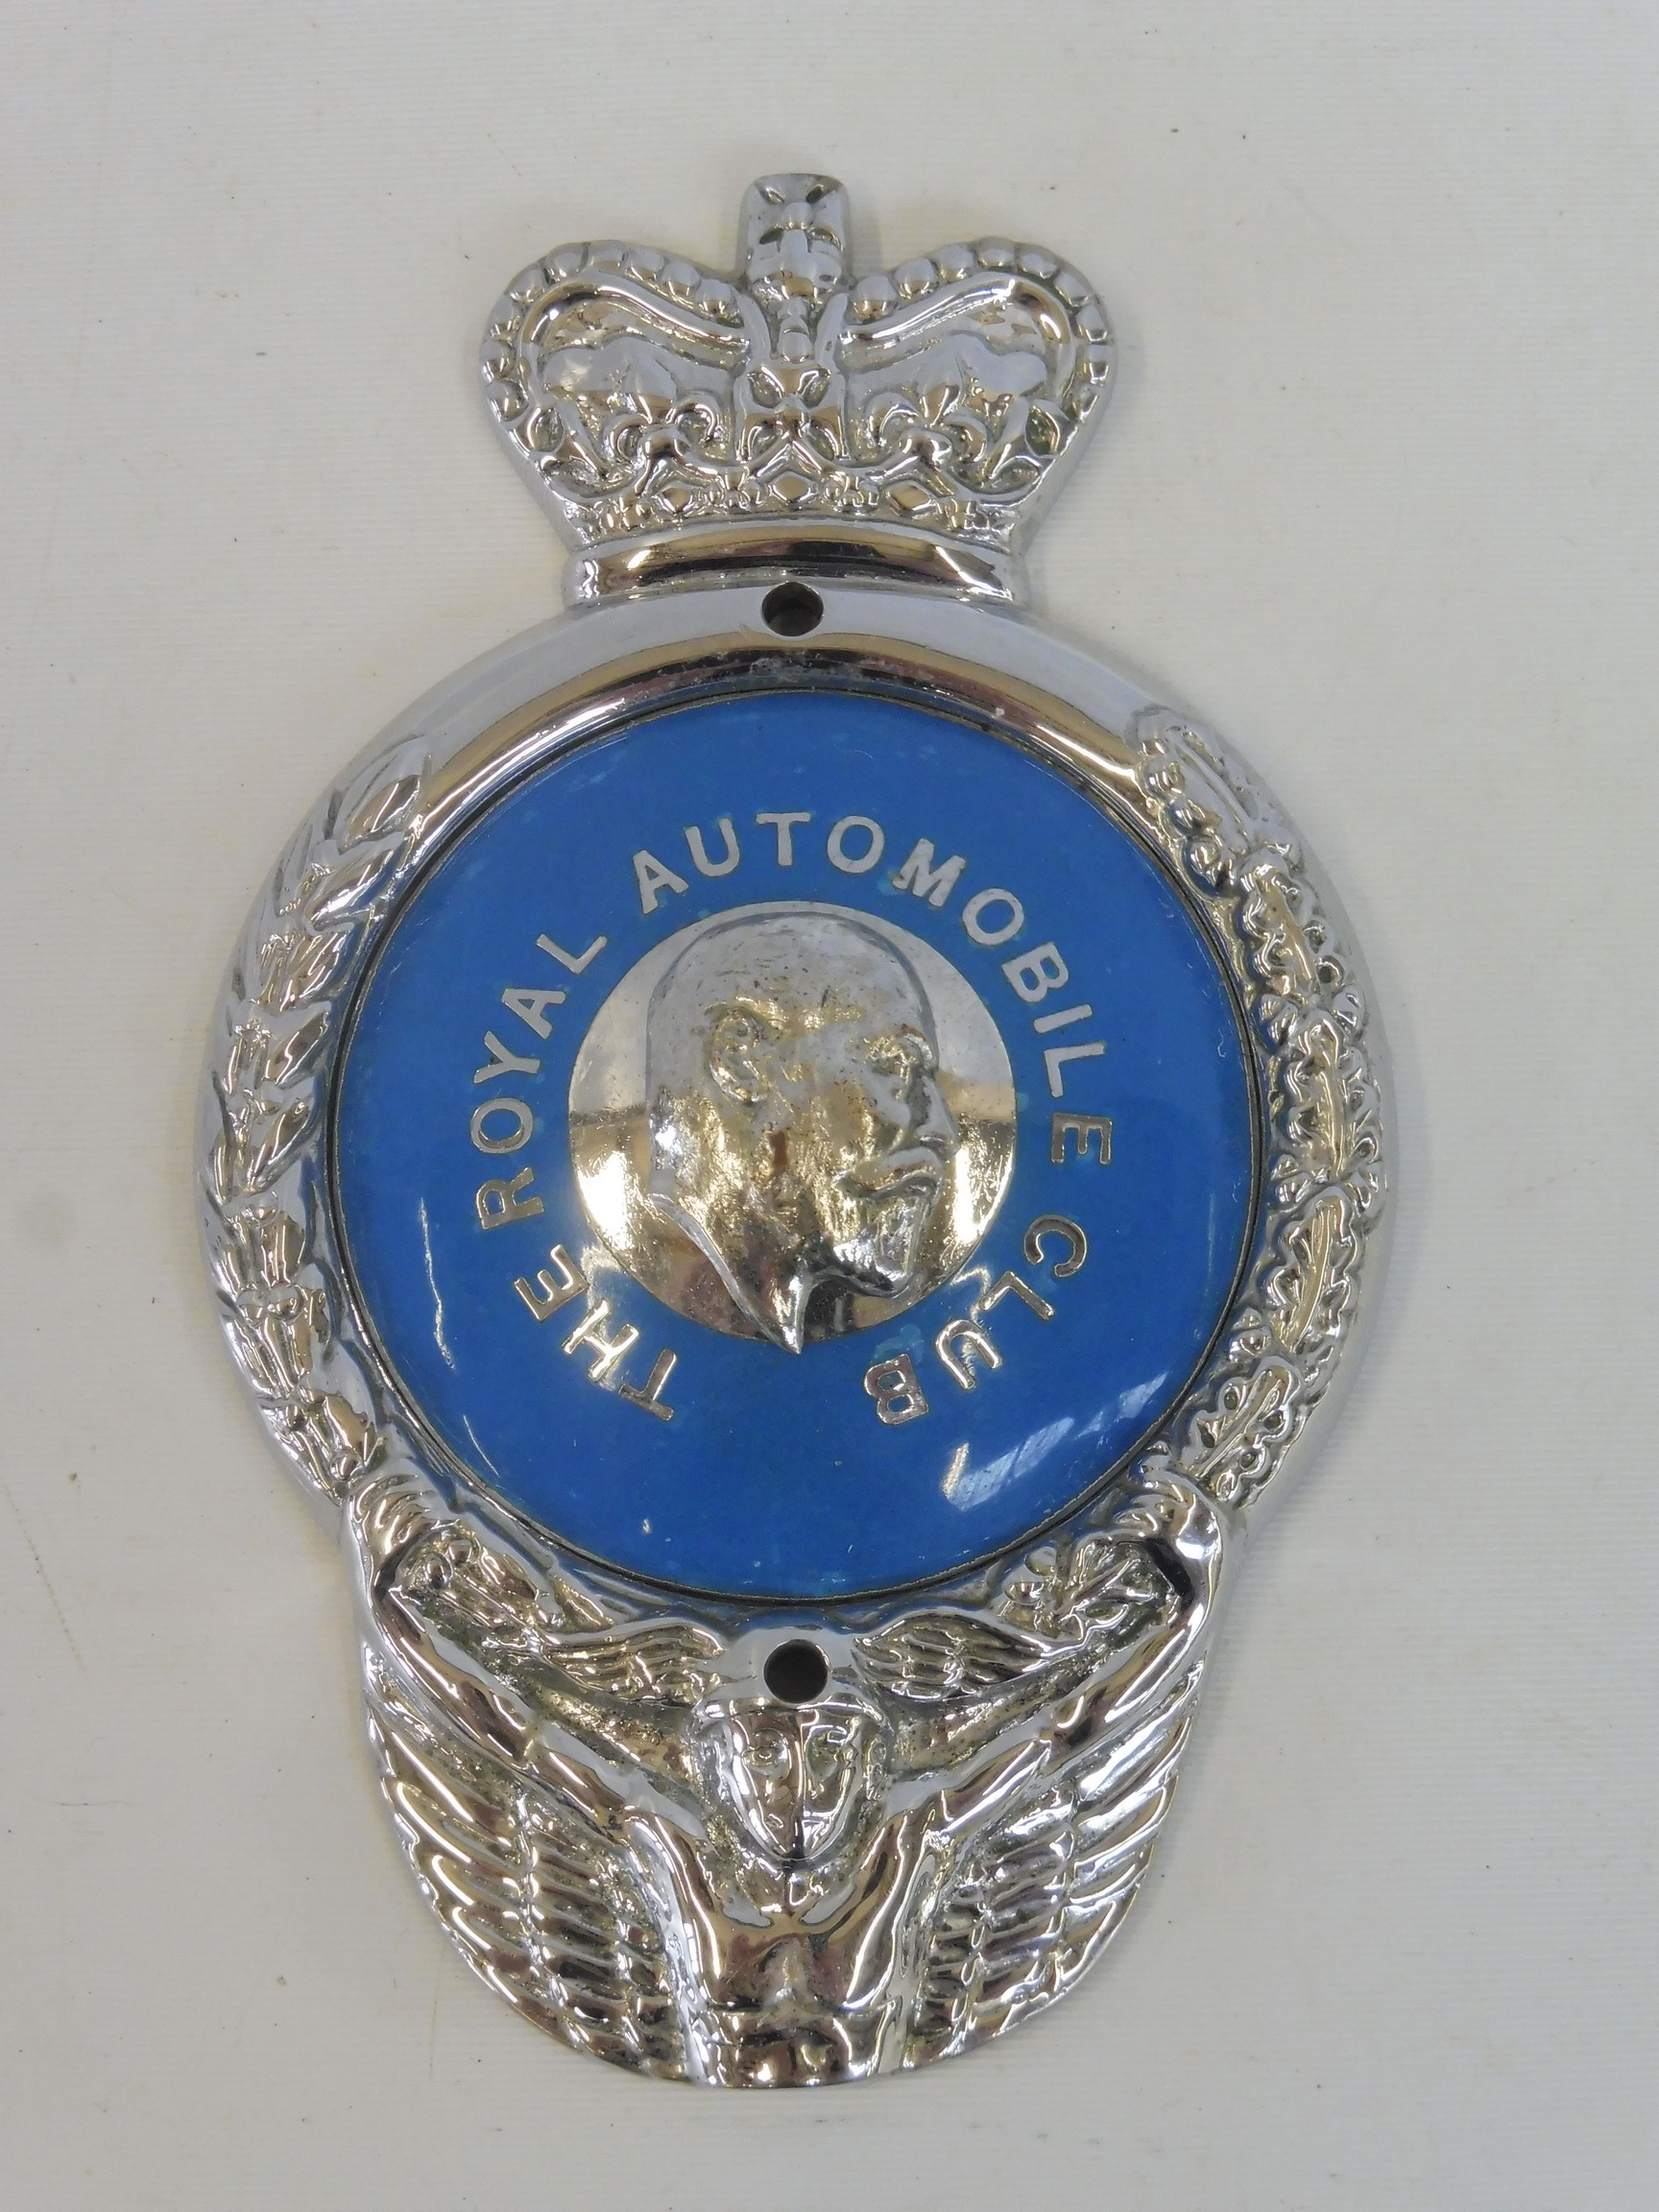 A rare Royal Automobile Club 1953 prototype badge, as featured on the prominant image on page 87